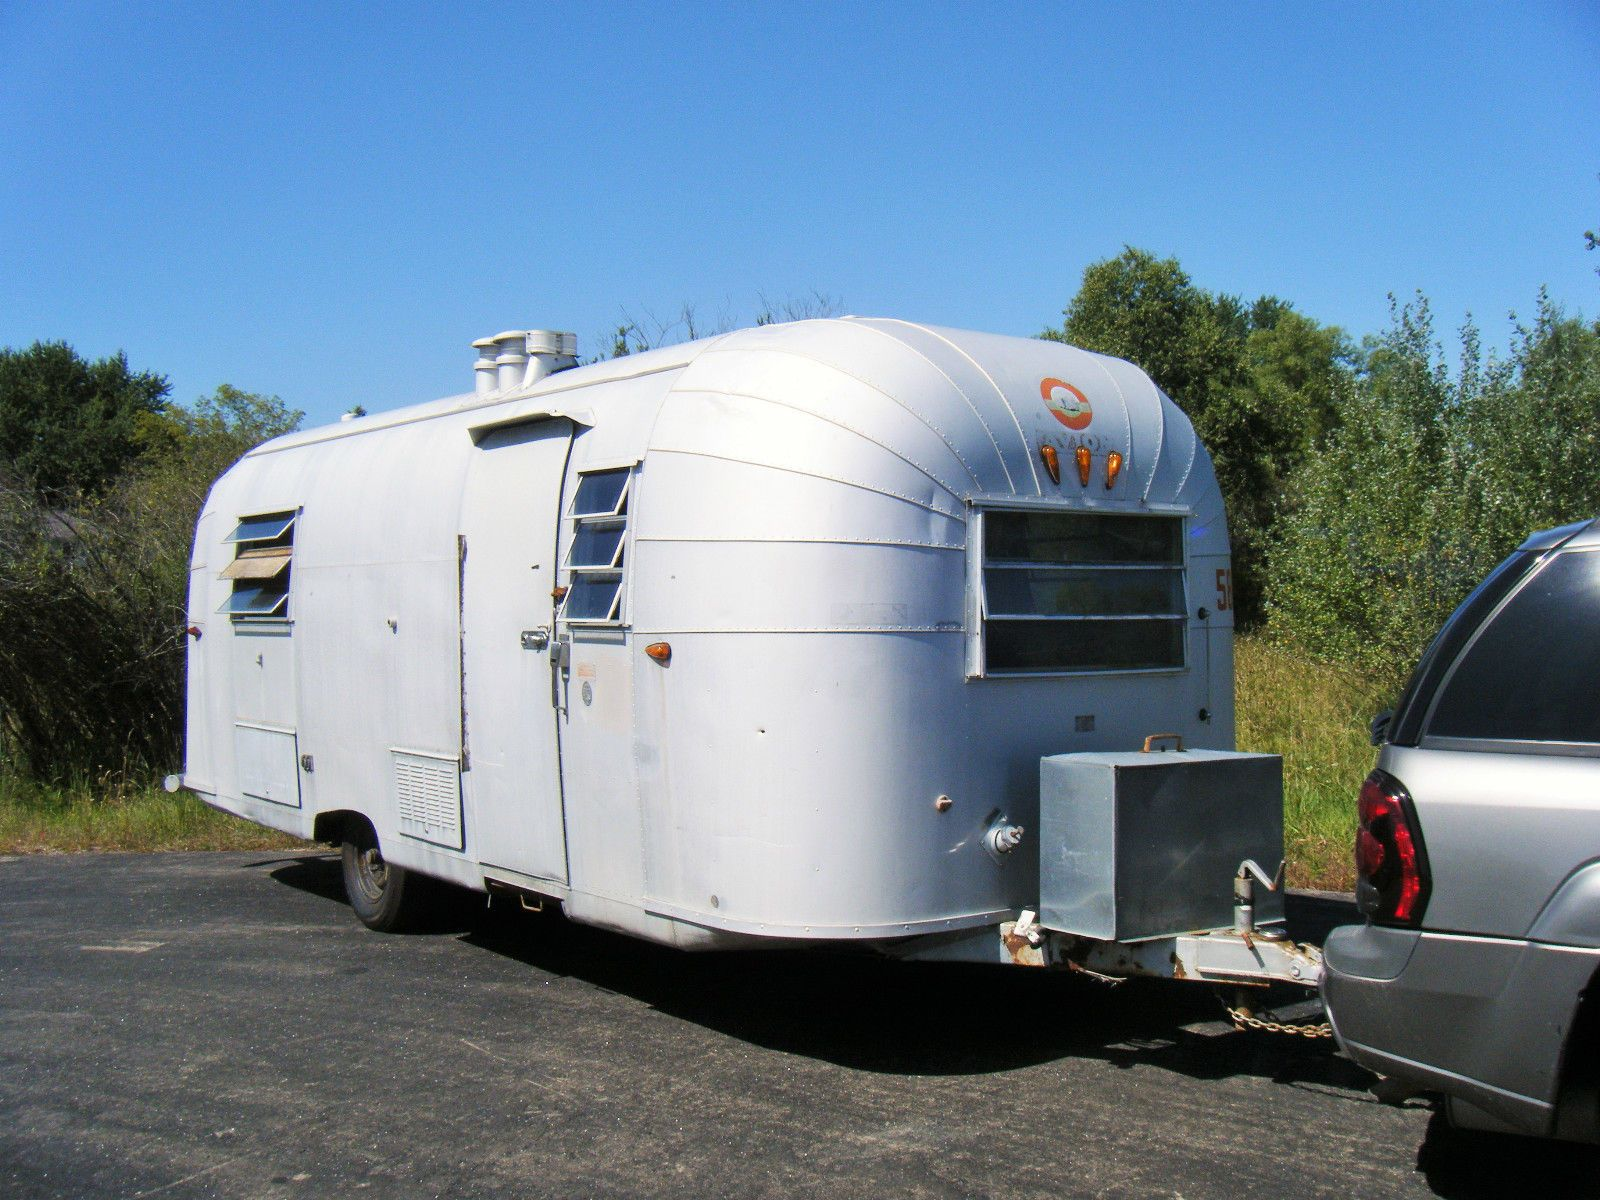 Details about 1964 Airstream H-24 | 1964 T-27 AVION CAMPER